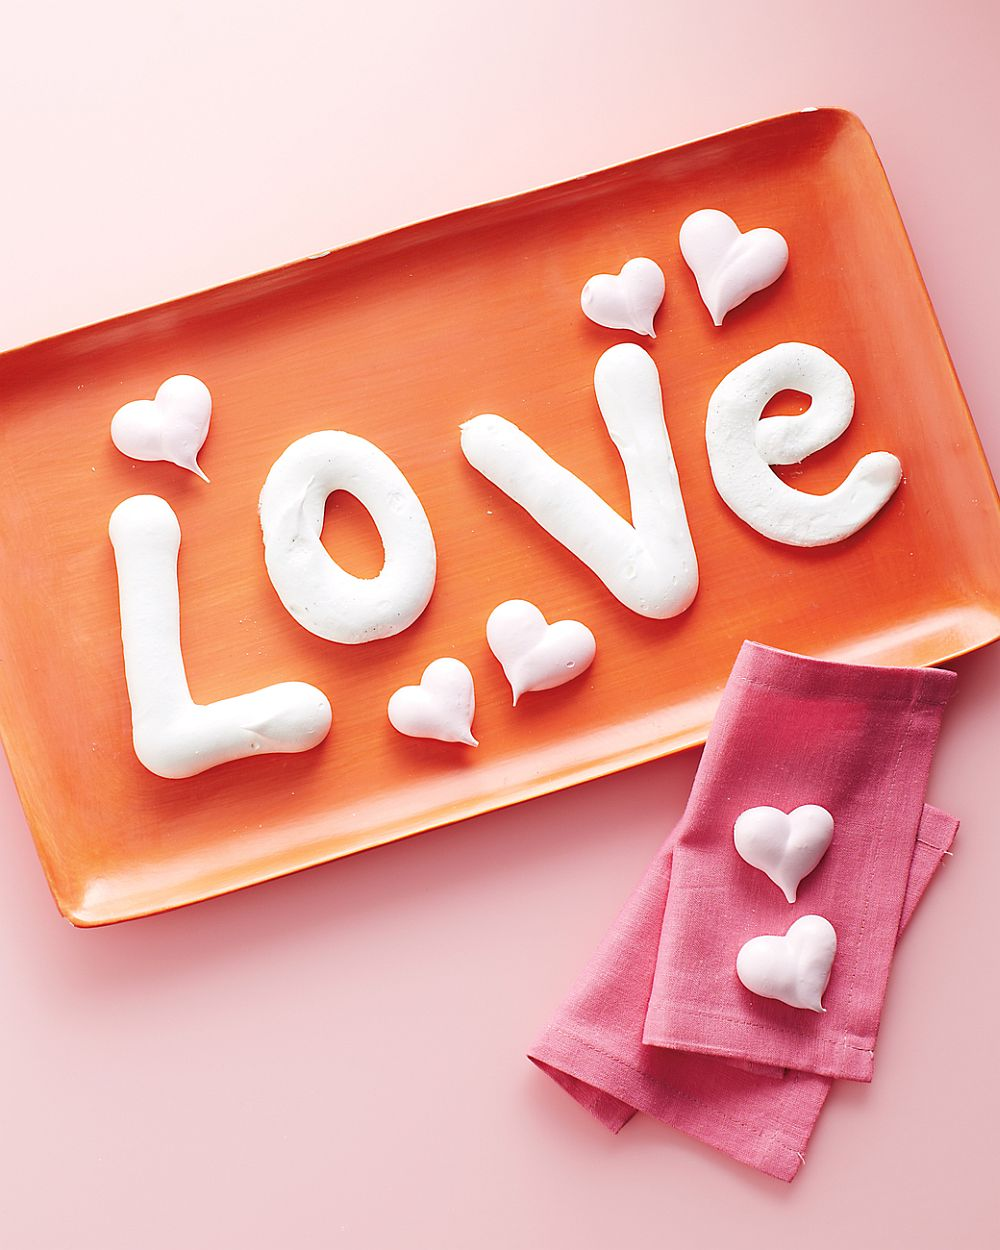 25 Easy And Fun Diy Valentine S Day Crafts For Everyone